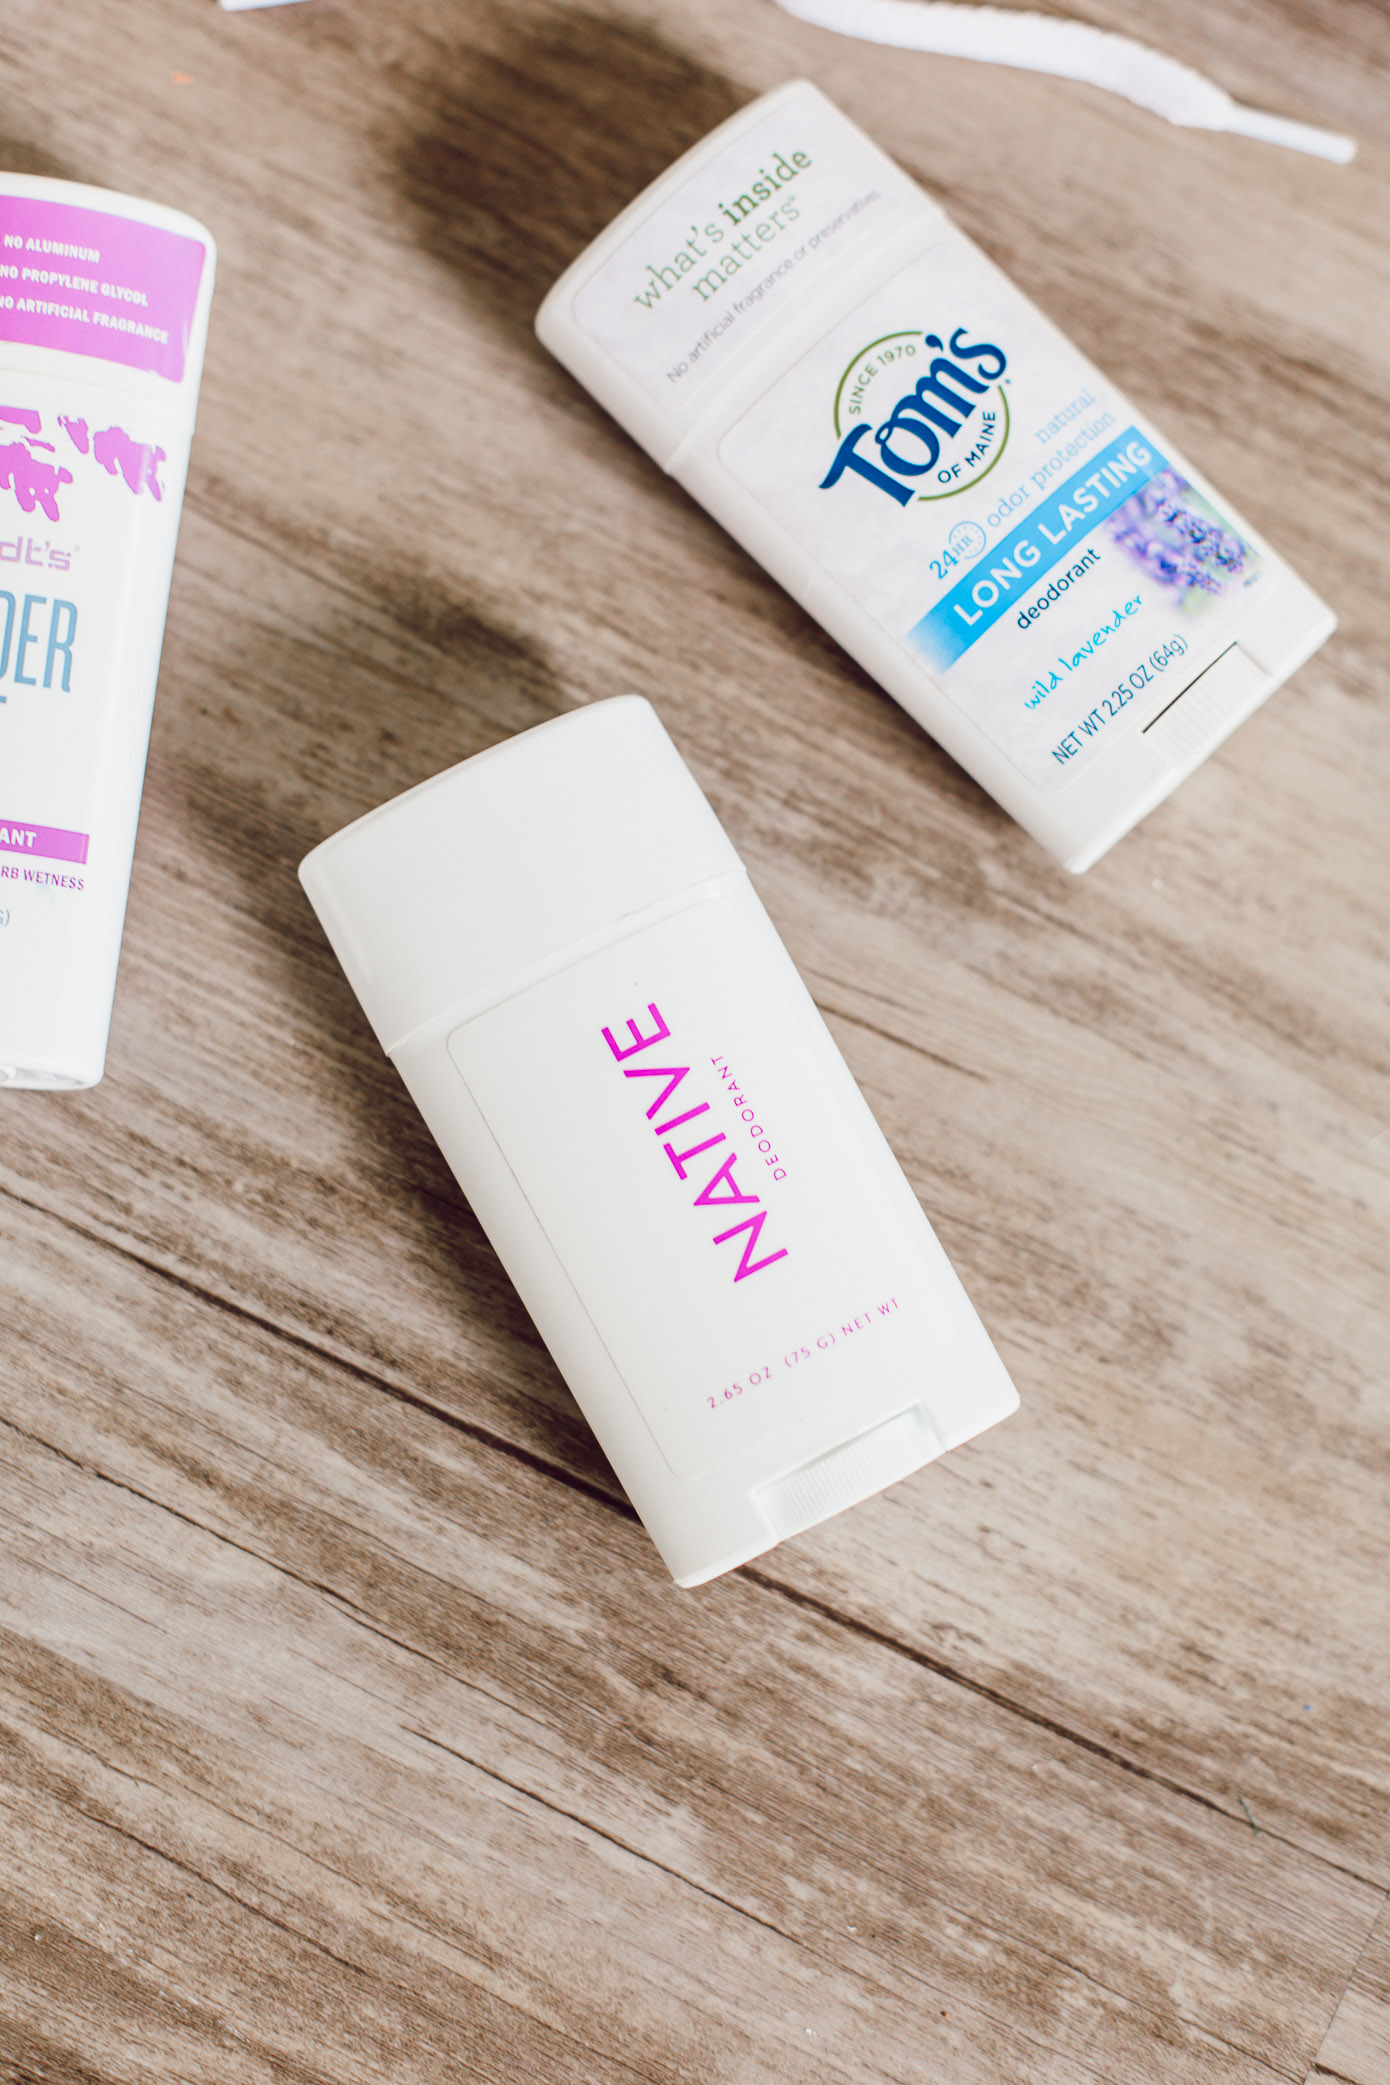 Why You Should Switch to Natural Deodorant | Honest Review of Native's Natural Deodorant | Louella Reese